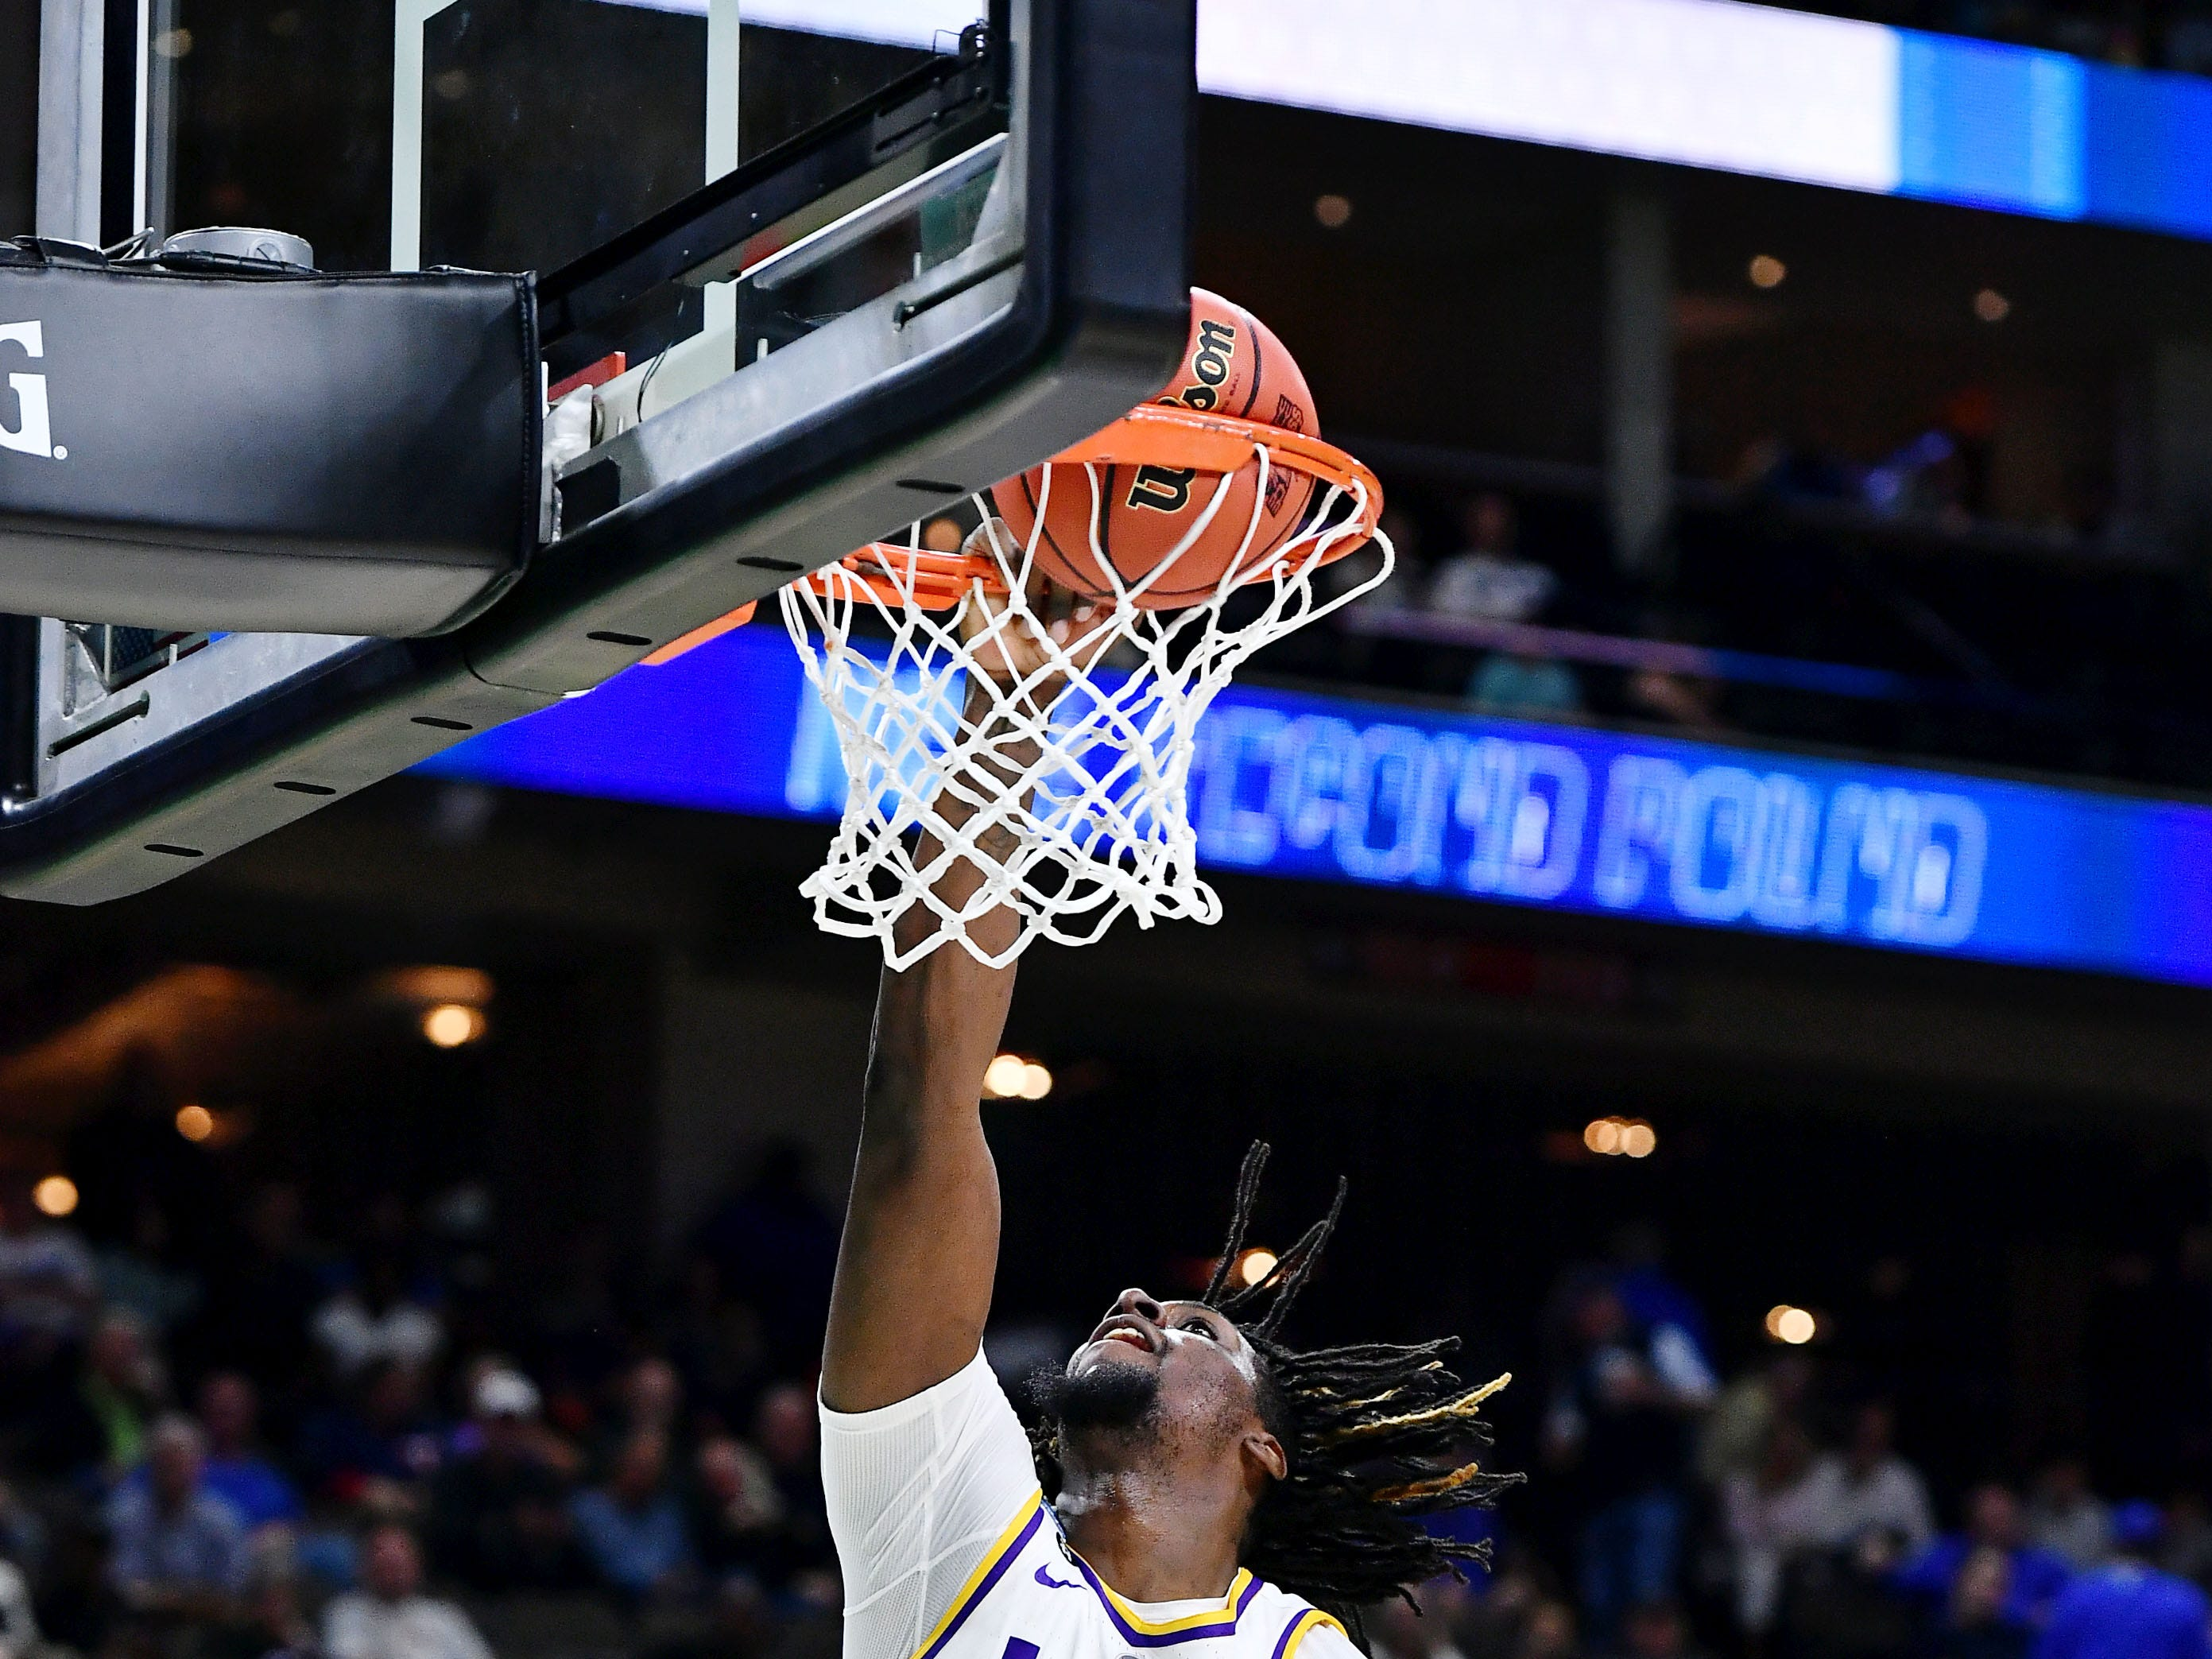 Mar 23, 2019; Jacksonville, FL, USA; LSU Tigers forward Naz Reid (0) makes a basket against the Maryland Terrapins during the first half in the second round of the 2019 NCAA Tournament at Jacksonville Veterans Memorial Arena. Mandatory Credit: John David Mercer-USA TODAY Sports